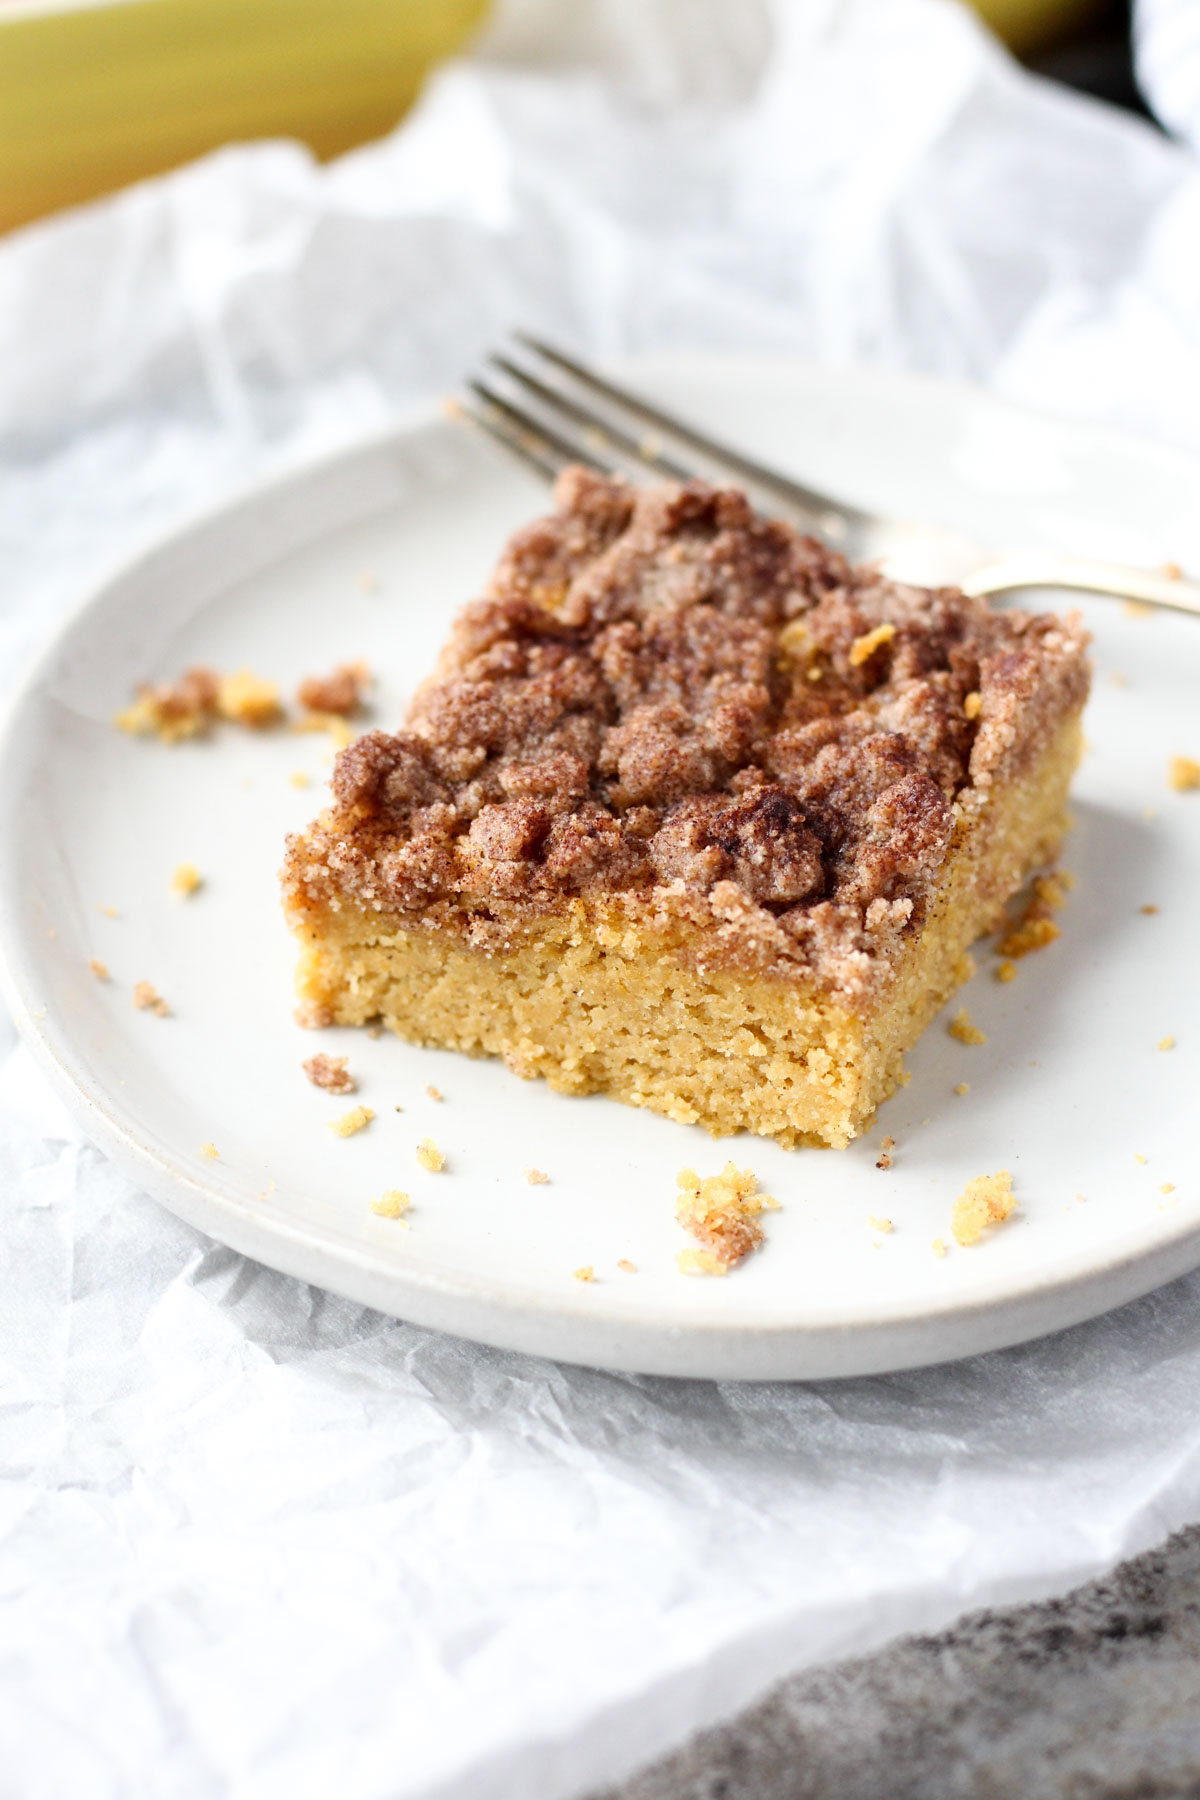 Slice of coffee cake on a white plate.